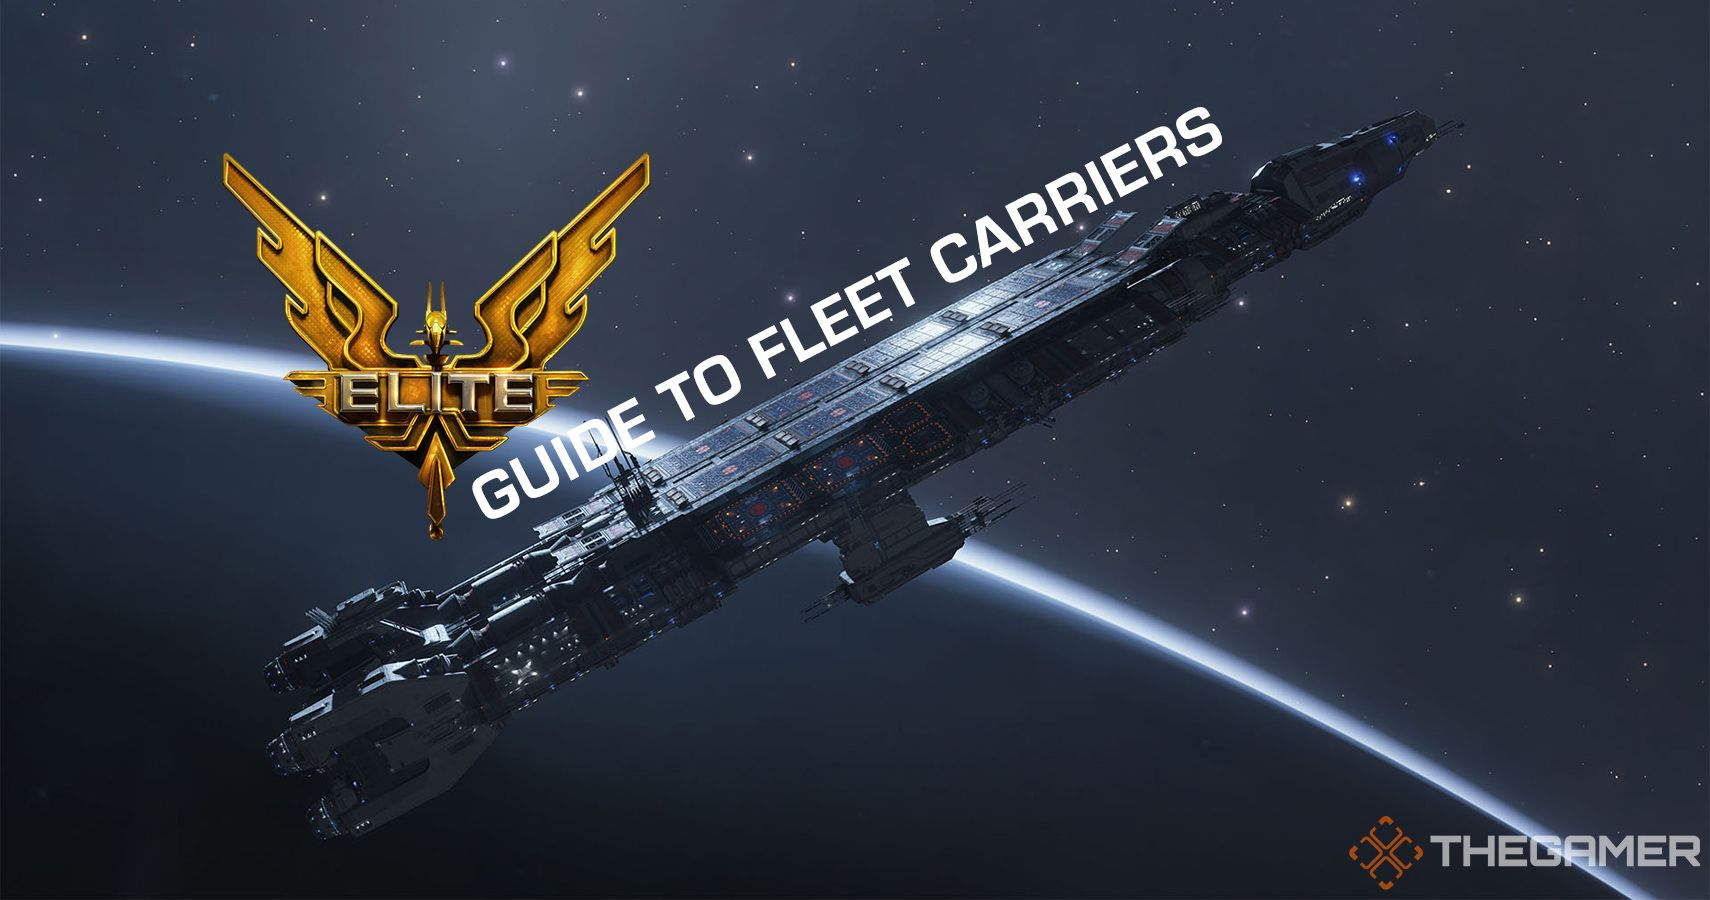 Elite Dangerous: Guide To Fleet Carriers